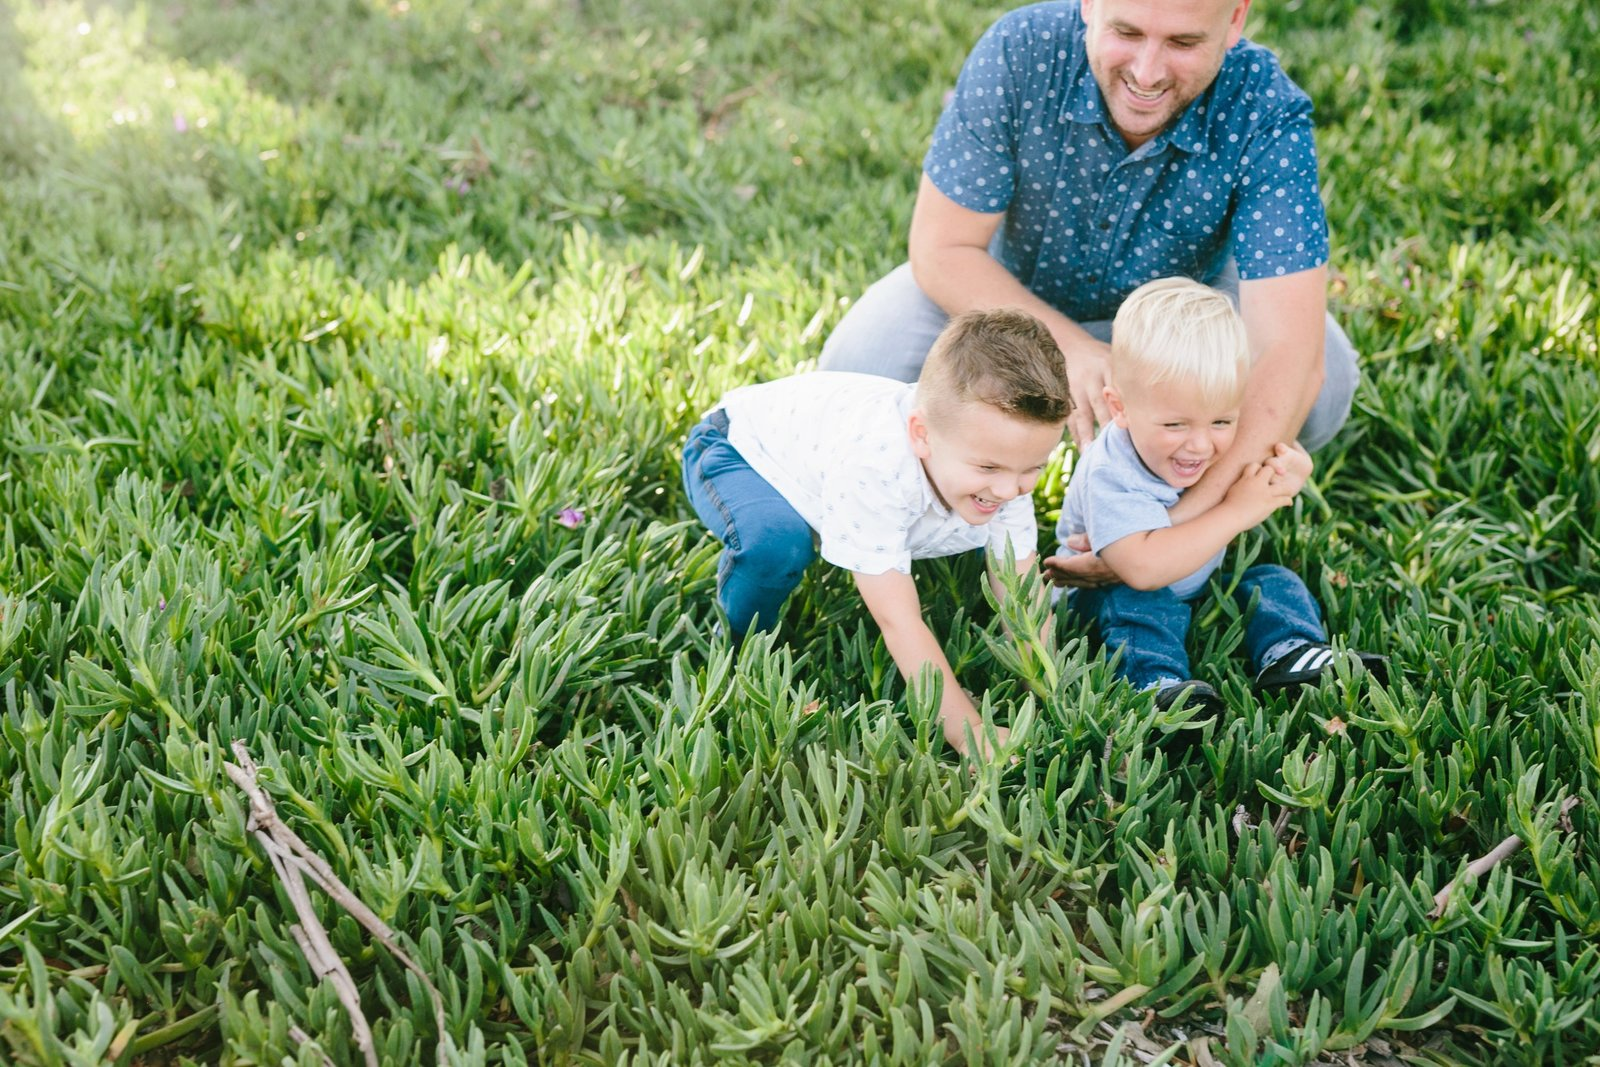 Family-Jodee Debes Photography-029